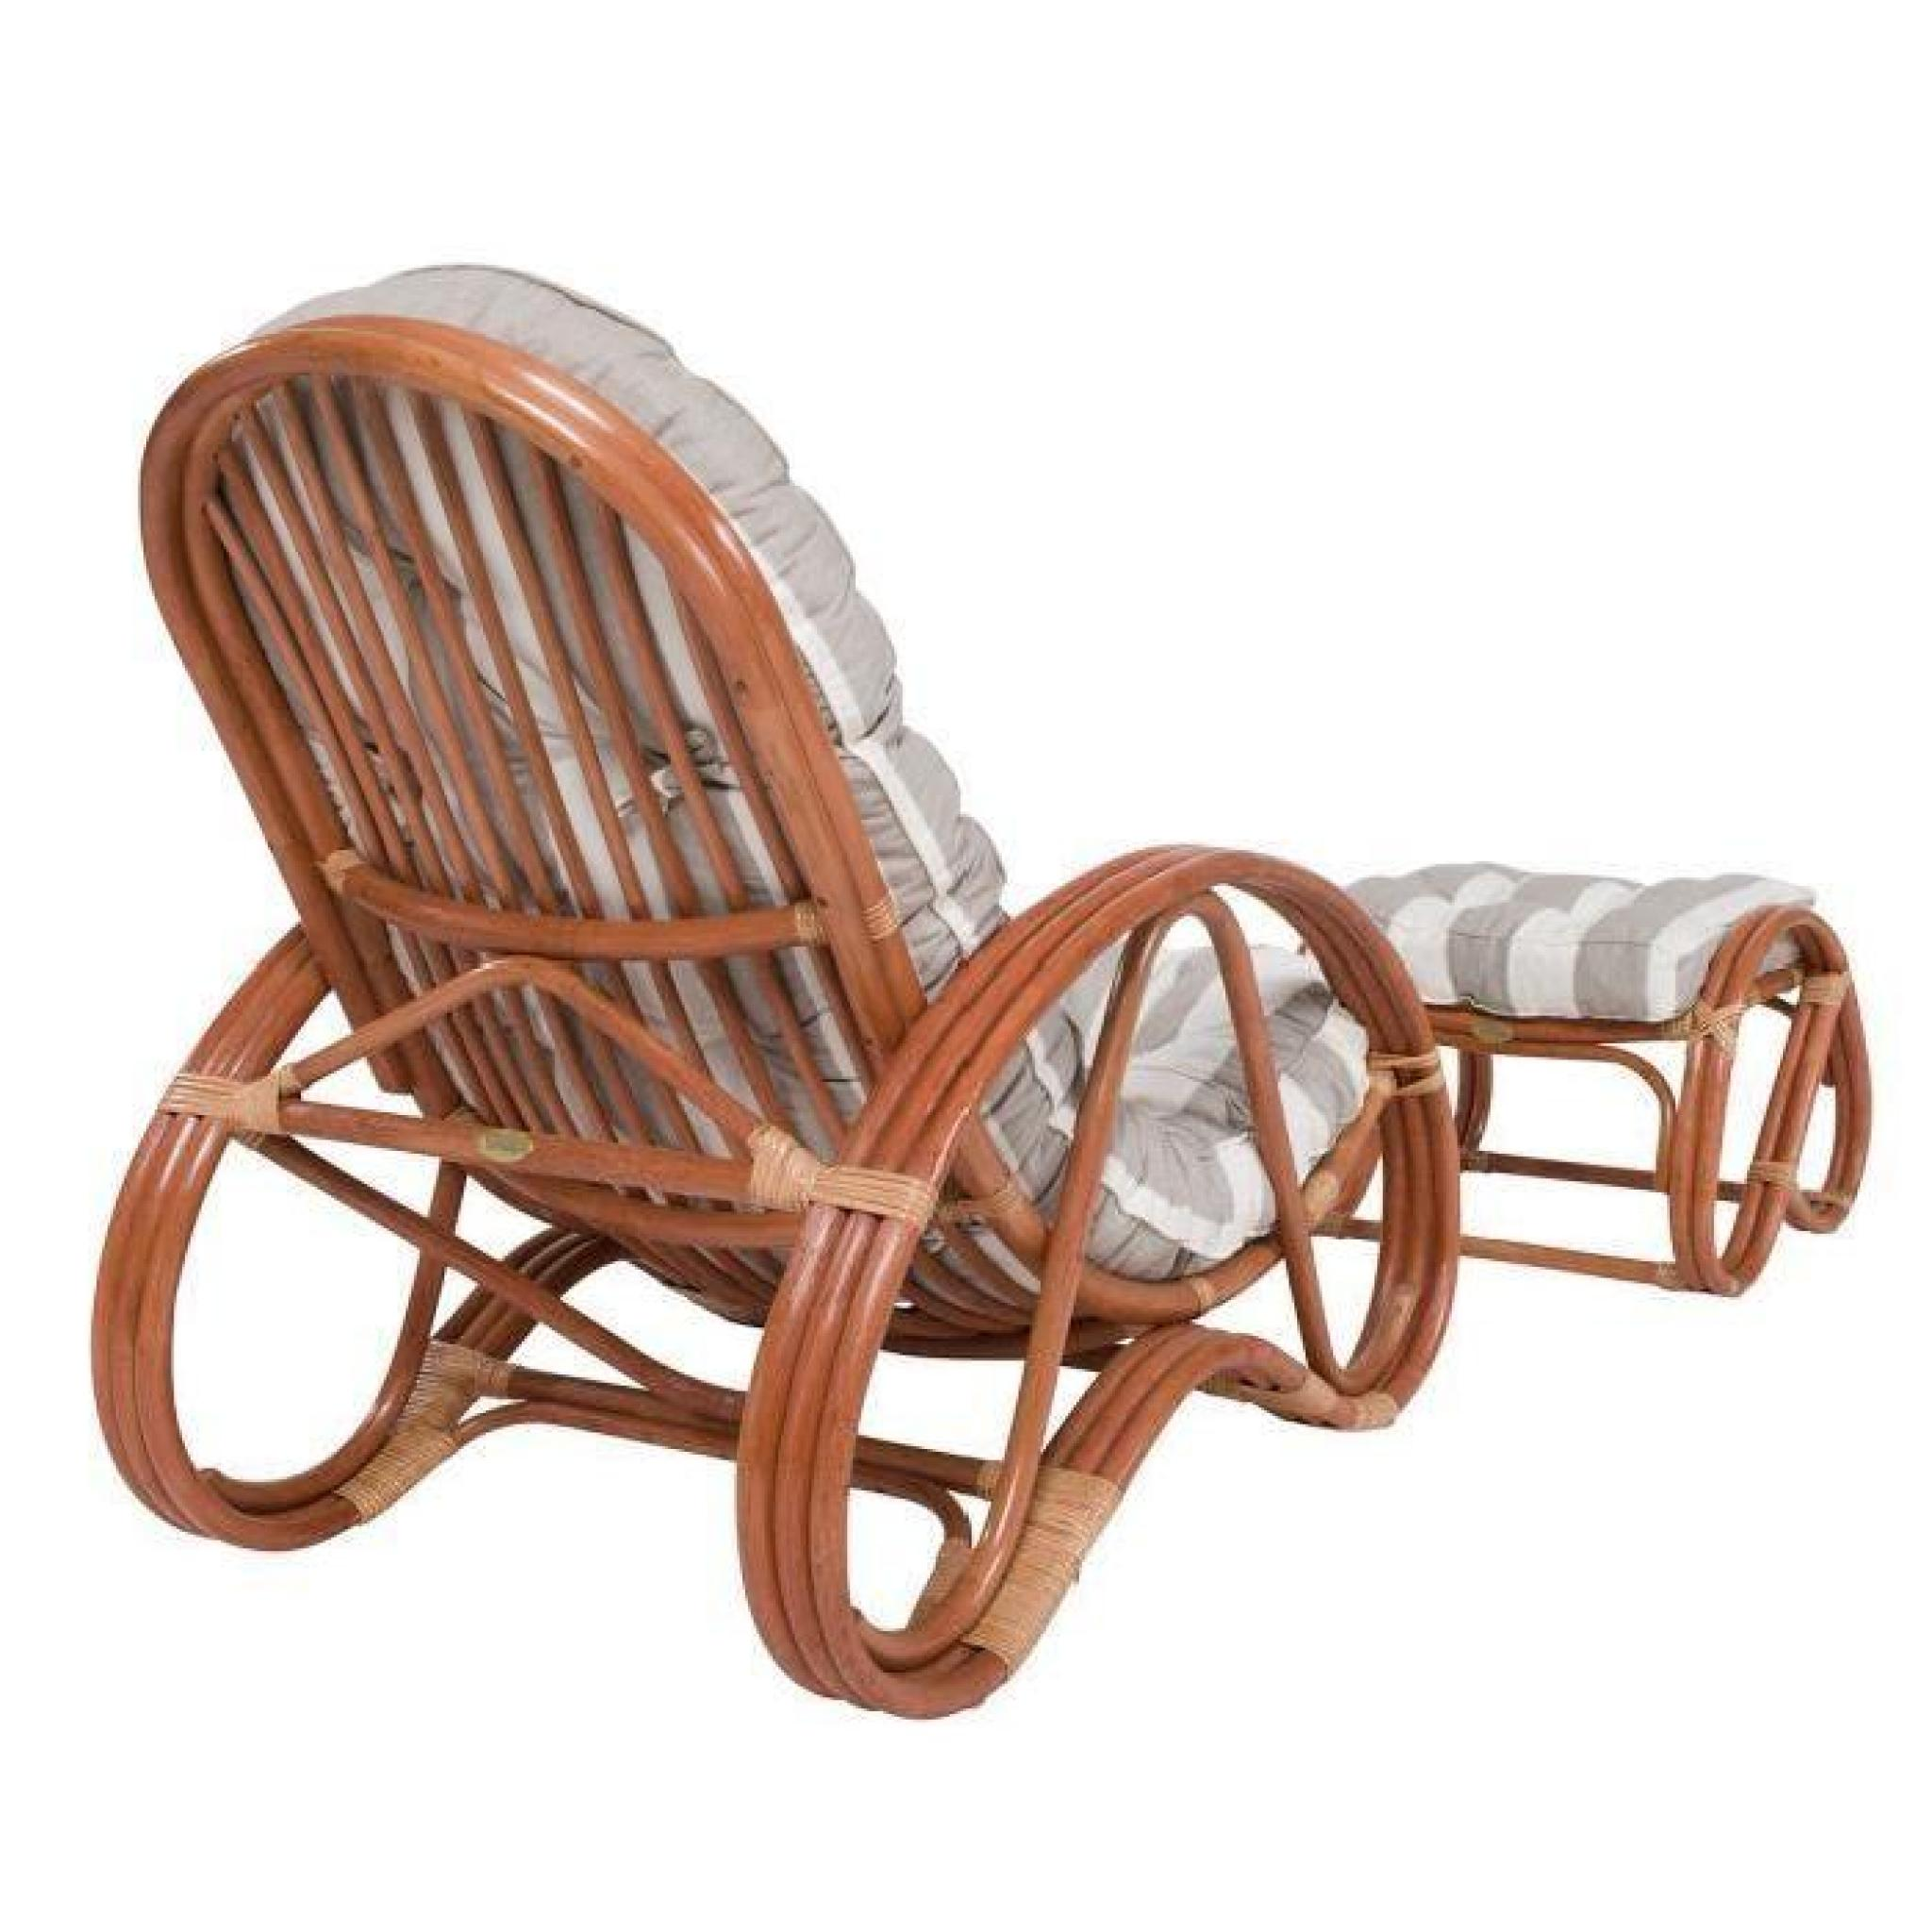 rocking chair pas cher great charles le c fauteuil lc pas cher discount with rocking chair pas. Black Bedroom Furniture Sets. Home Design Ideas